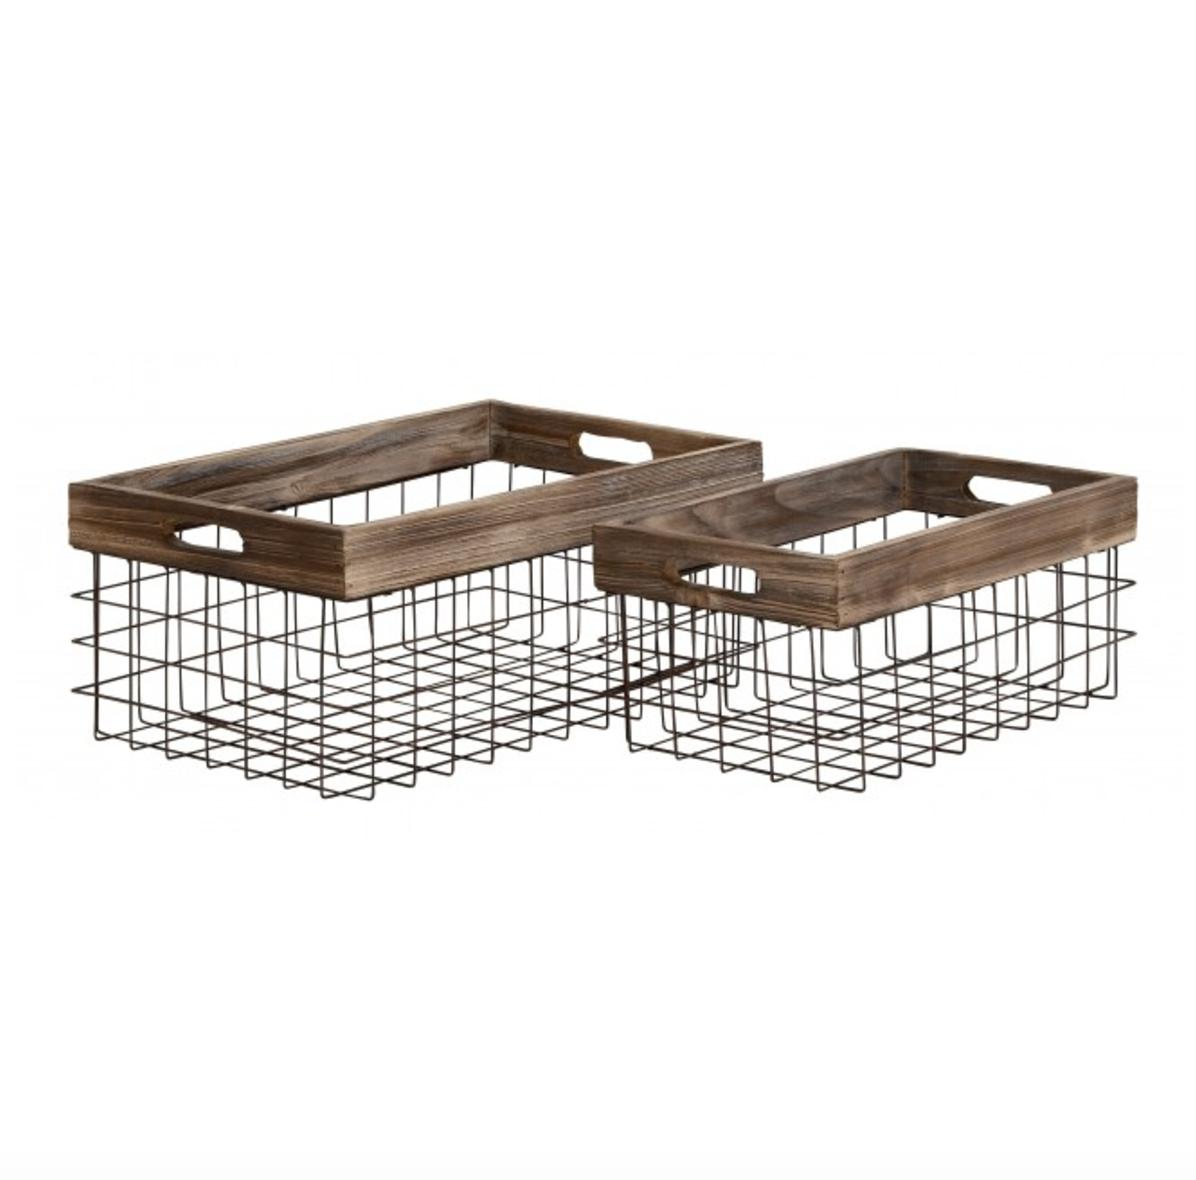 Image of Set of 2 Wood and Wire Baskets